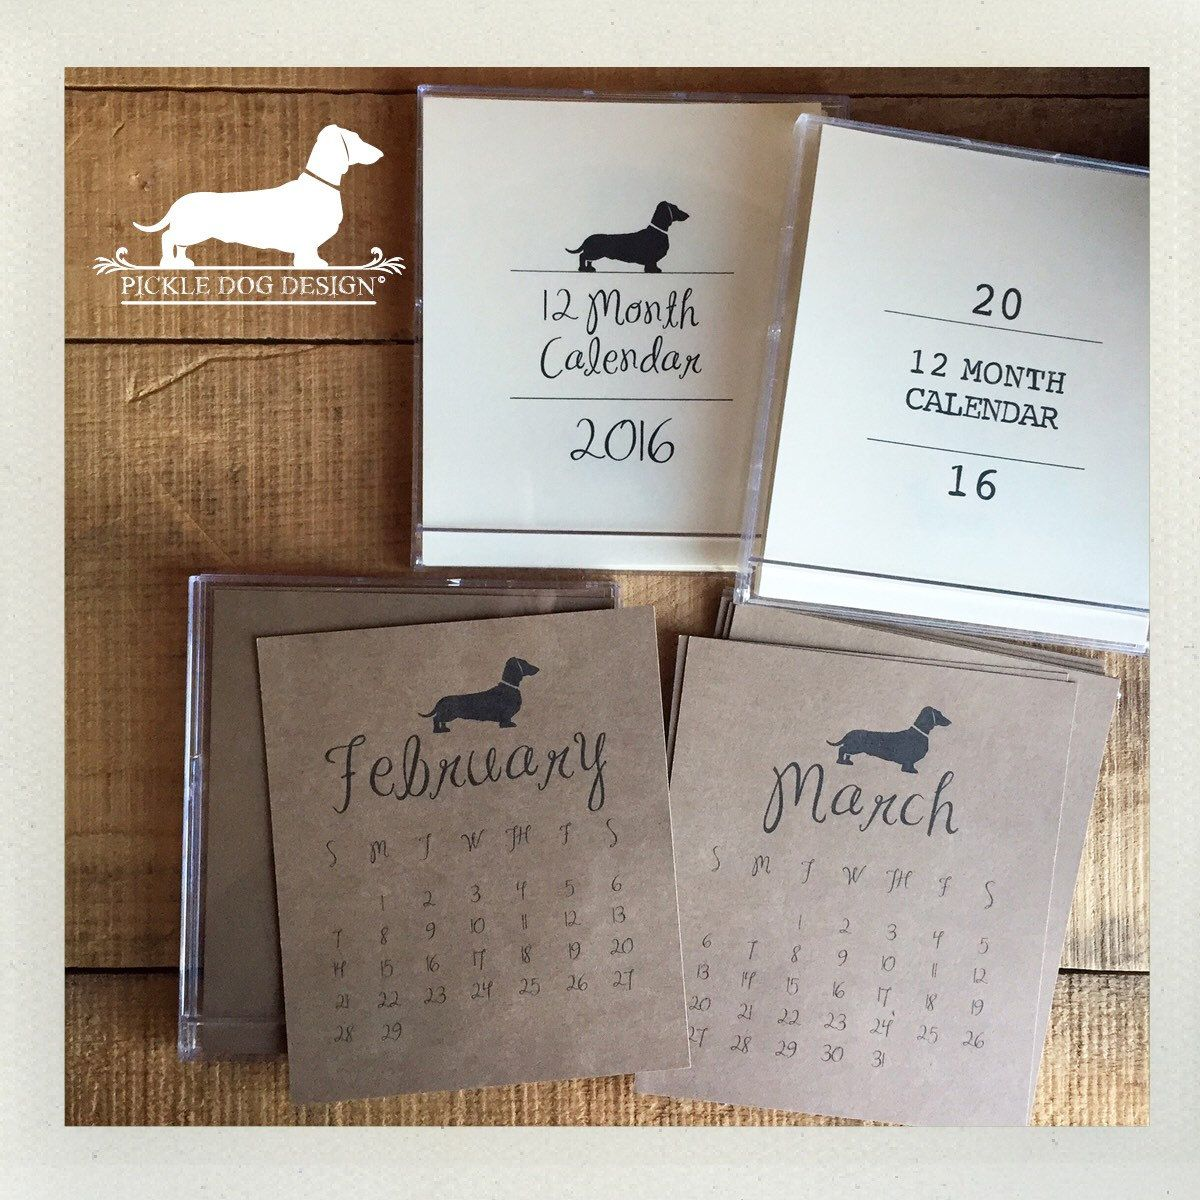 We say goodbye to February next week. It's not too late to welcome March with a new calendar.  We have a handful of 2016 calendars left in stock now on clearance for only $5. Once they're gone, they're gone!